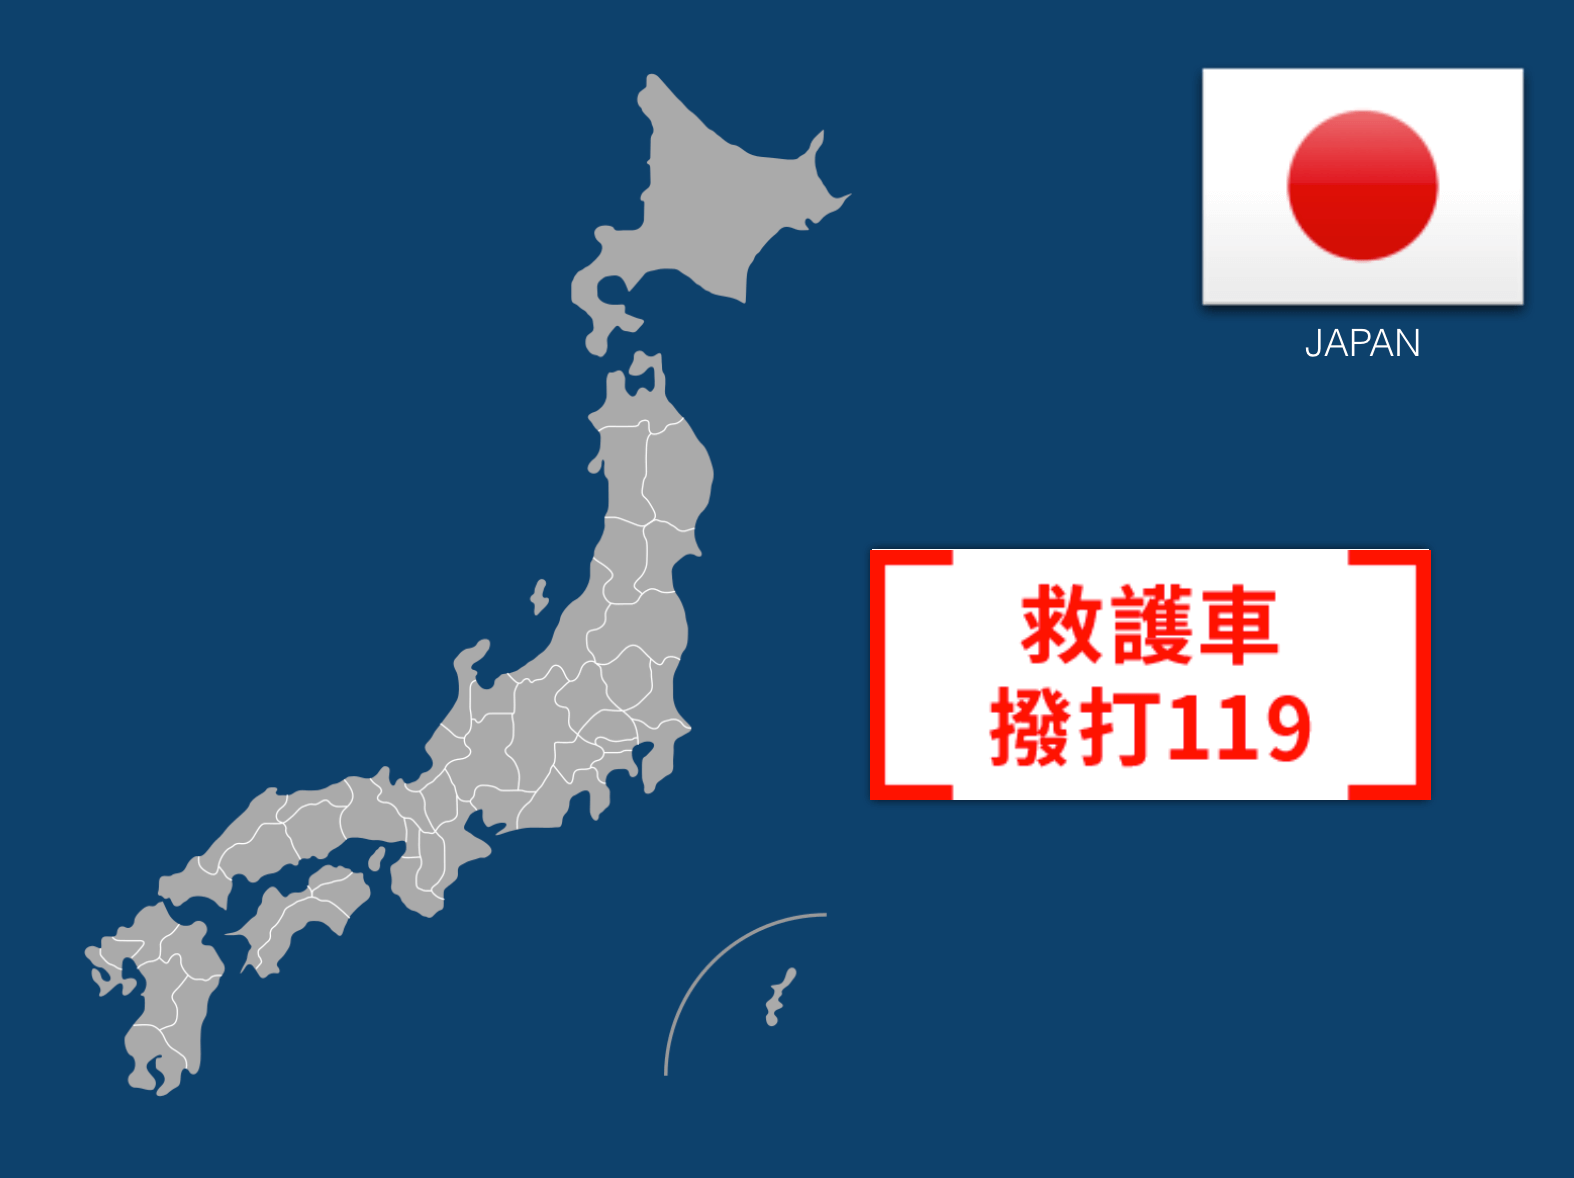 Dial 119 to Call an Ambulance in Japan